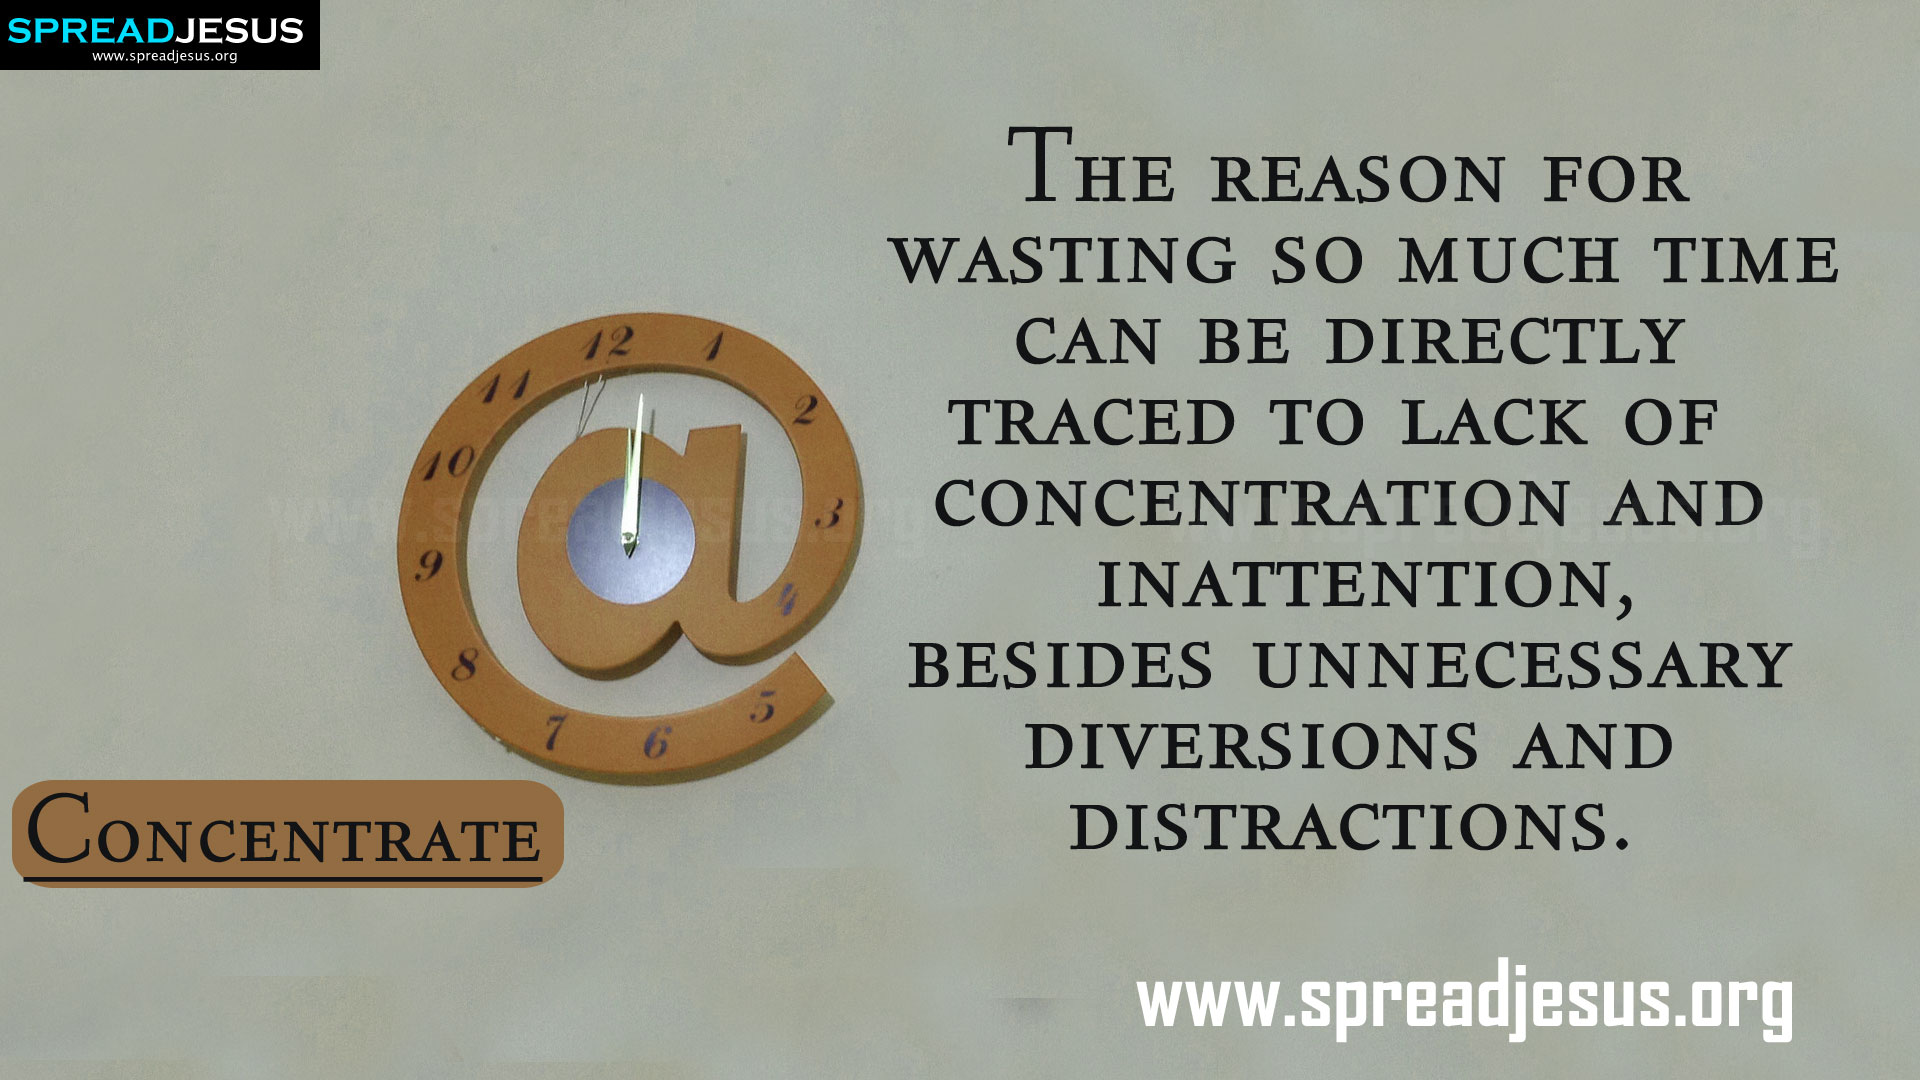 The reason for wasting time can be directly traced to lack of concentration and inattention. Besides unnecessary diversions and distractions